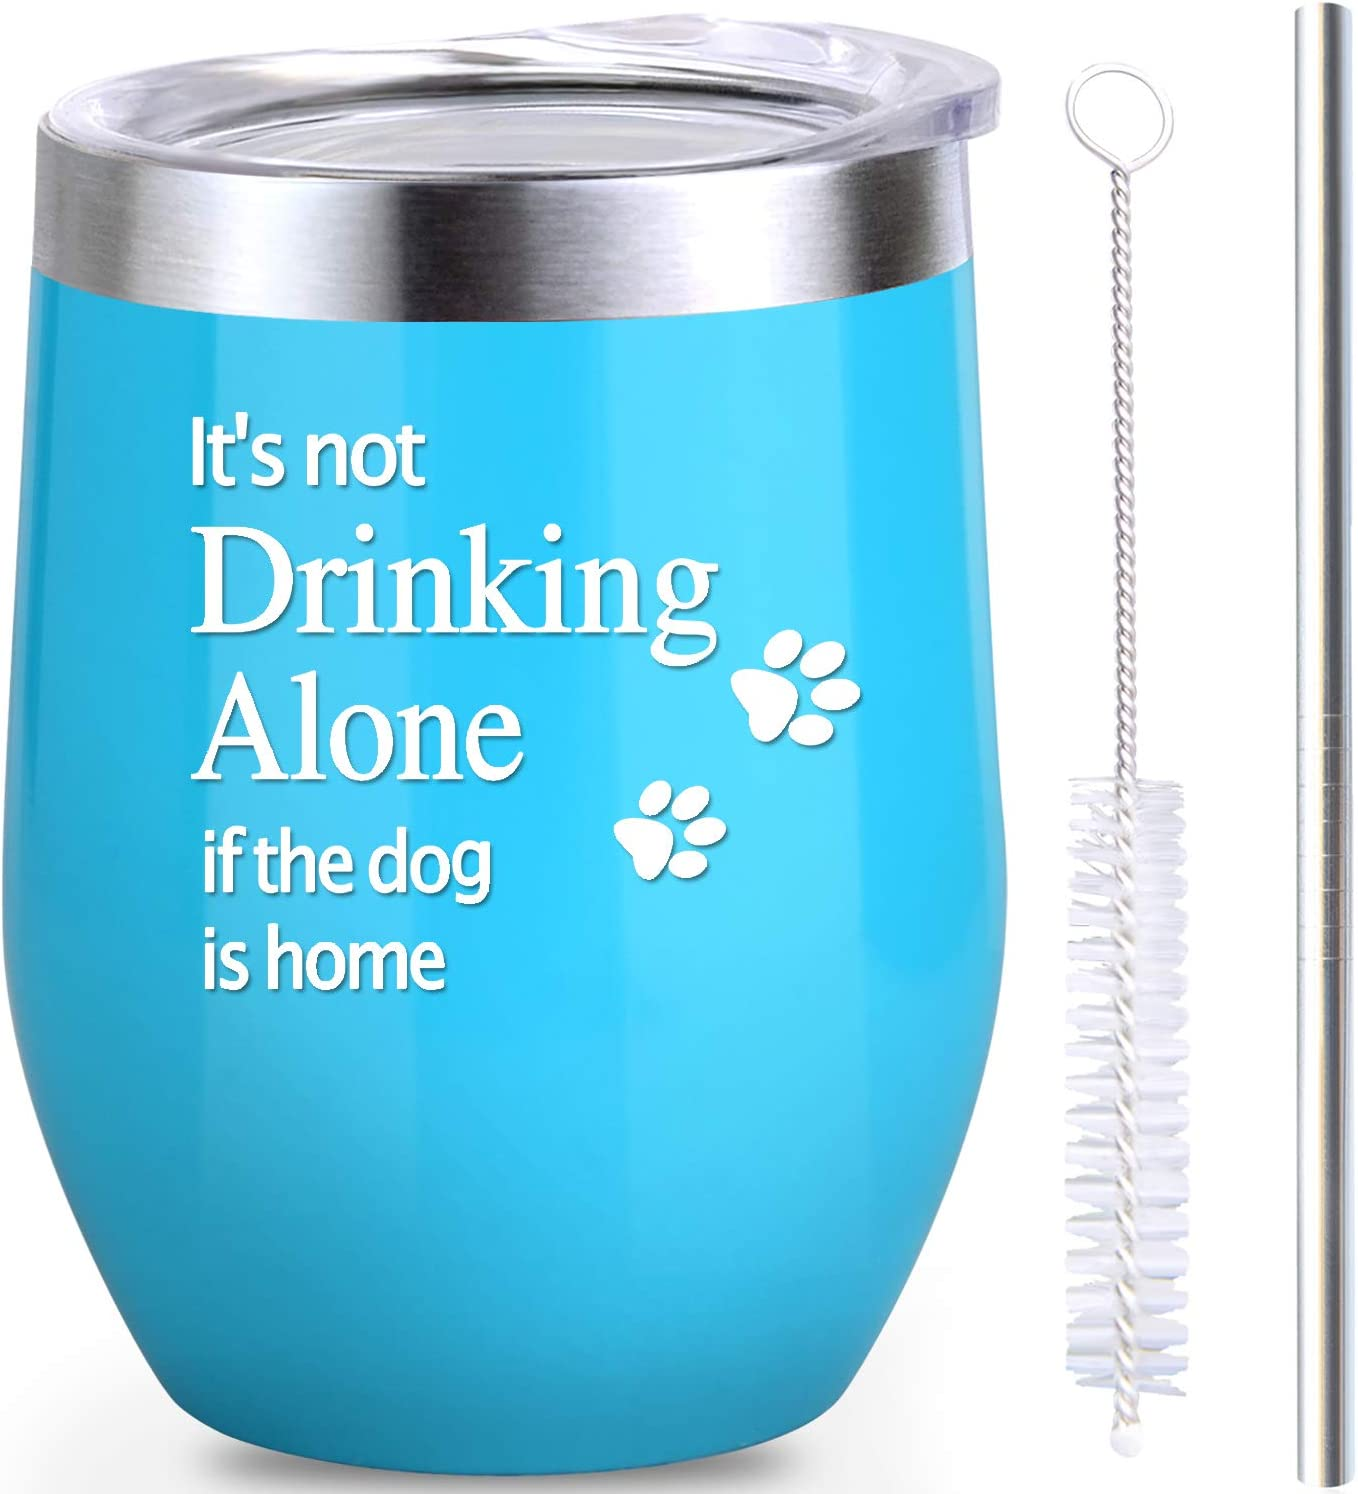 Funny Wine Tumbler Glass Gift For Dog Lover Women Men Her Him Mom Dad Birthday Teacher Beach, 12 OZ Stemless Wine Tumbler With Lid And Straw, It's not Drinking Alone if the dog is home